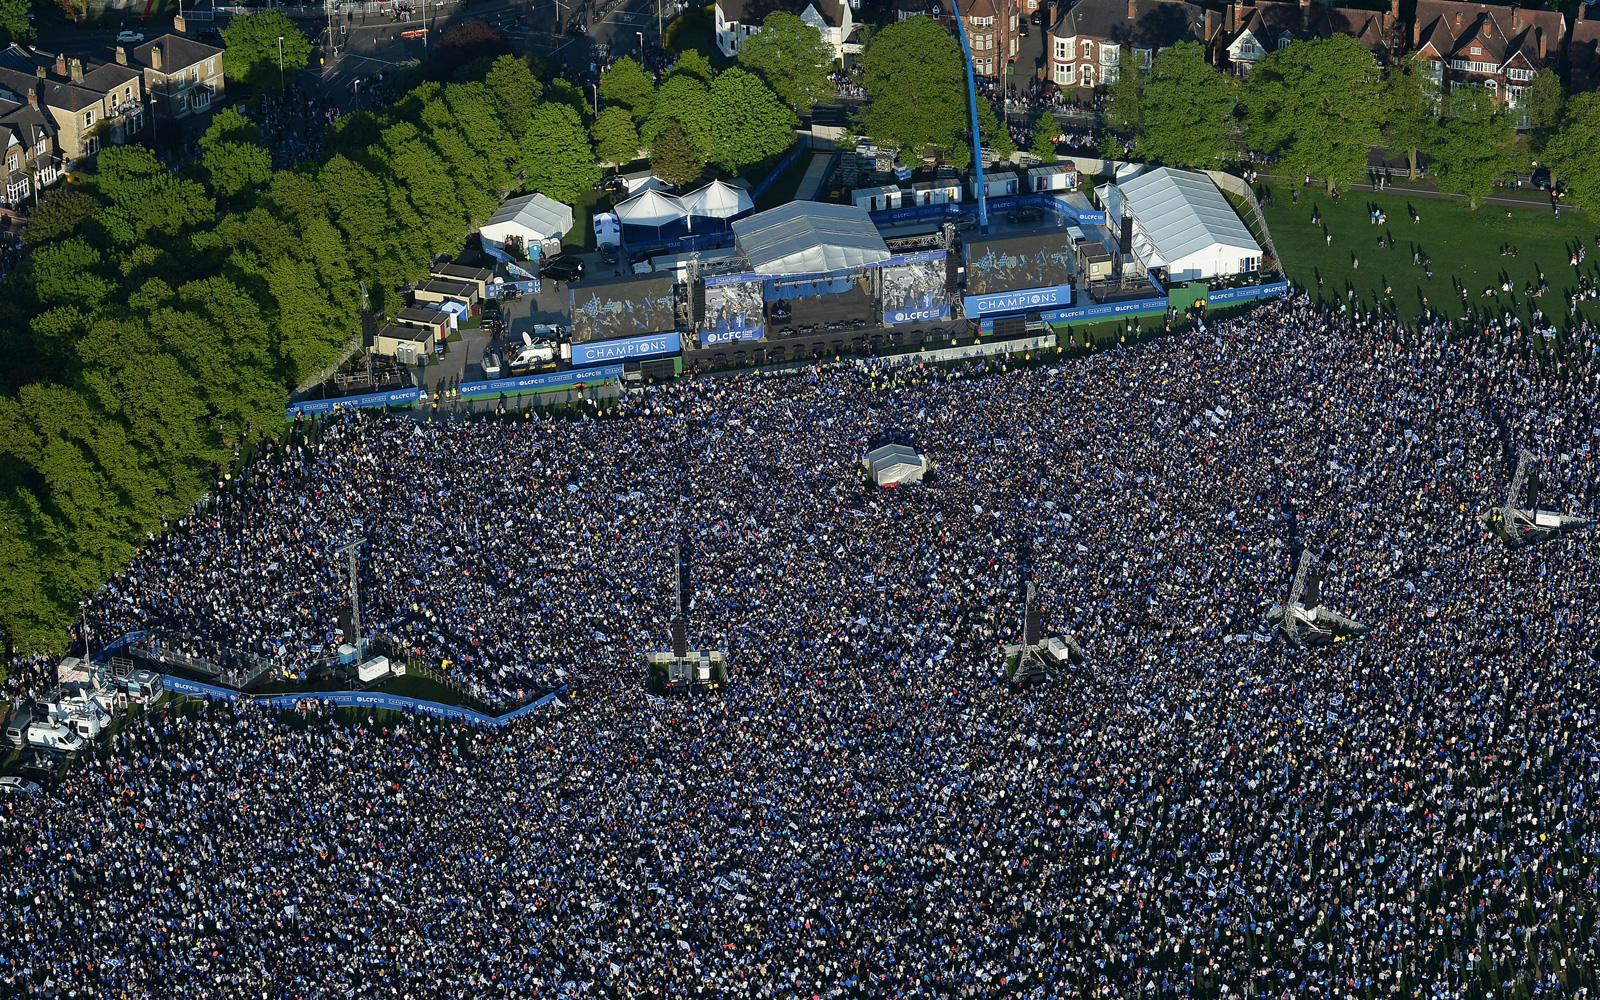 Thousands upon thousands pack Victoria Park in Leicester to celebrate Leicester City's Premier League title.